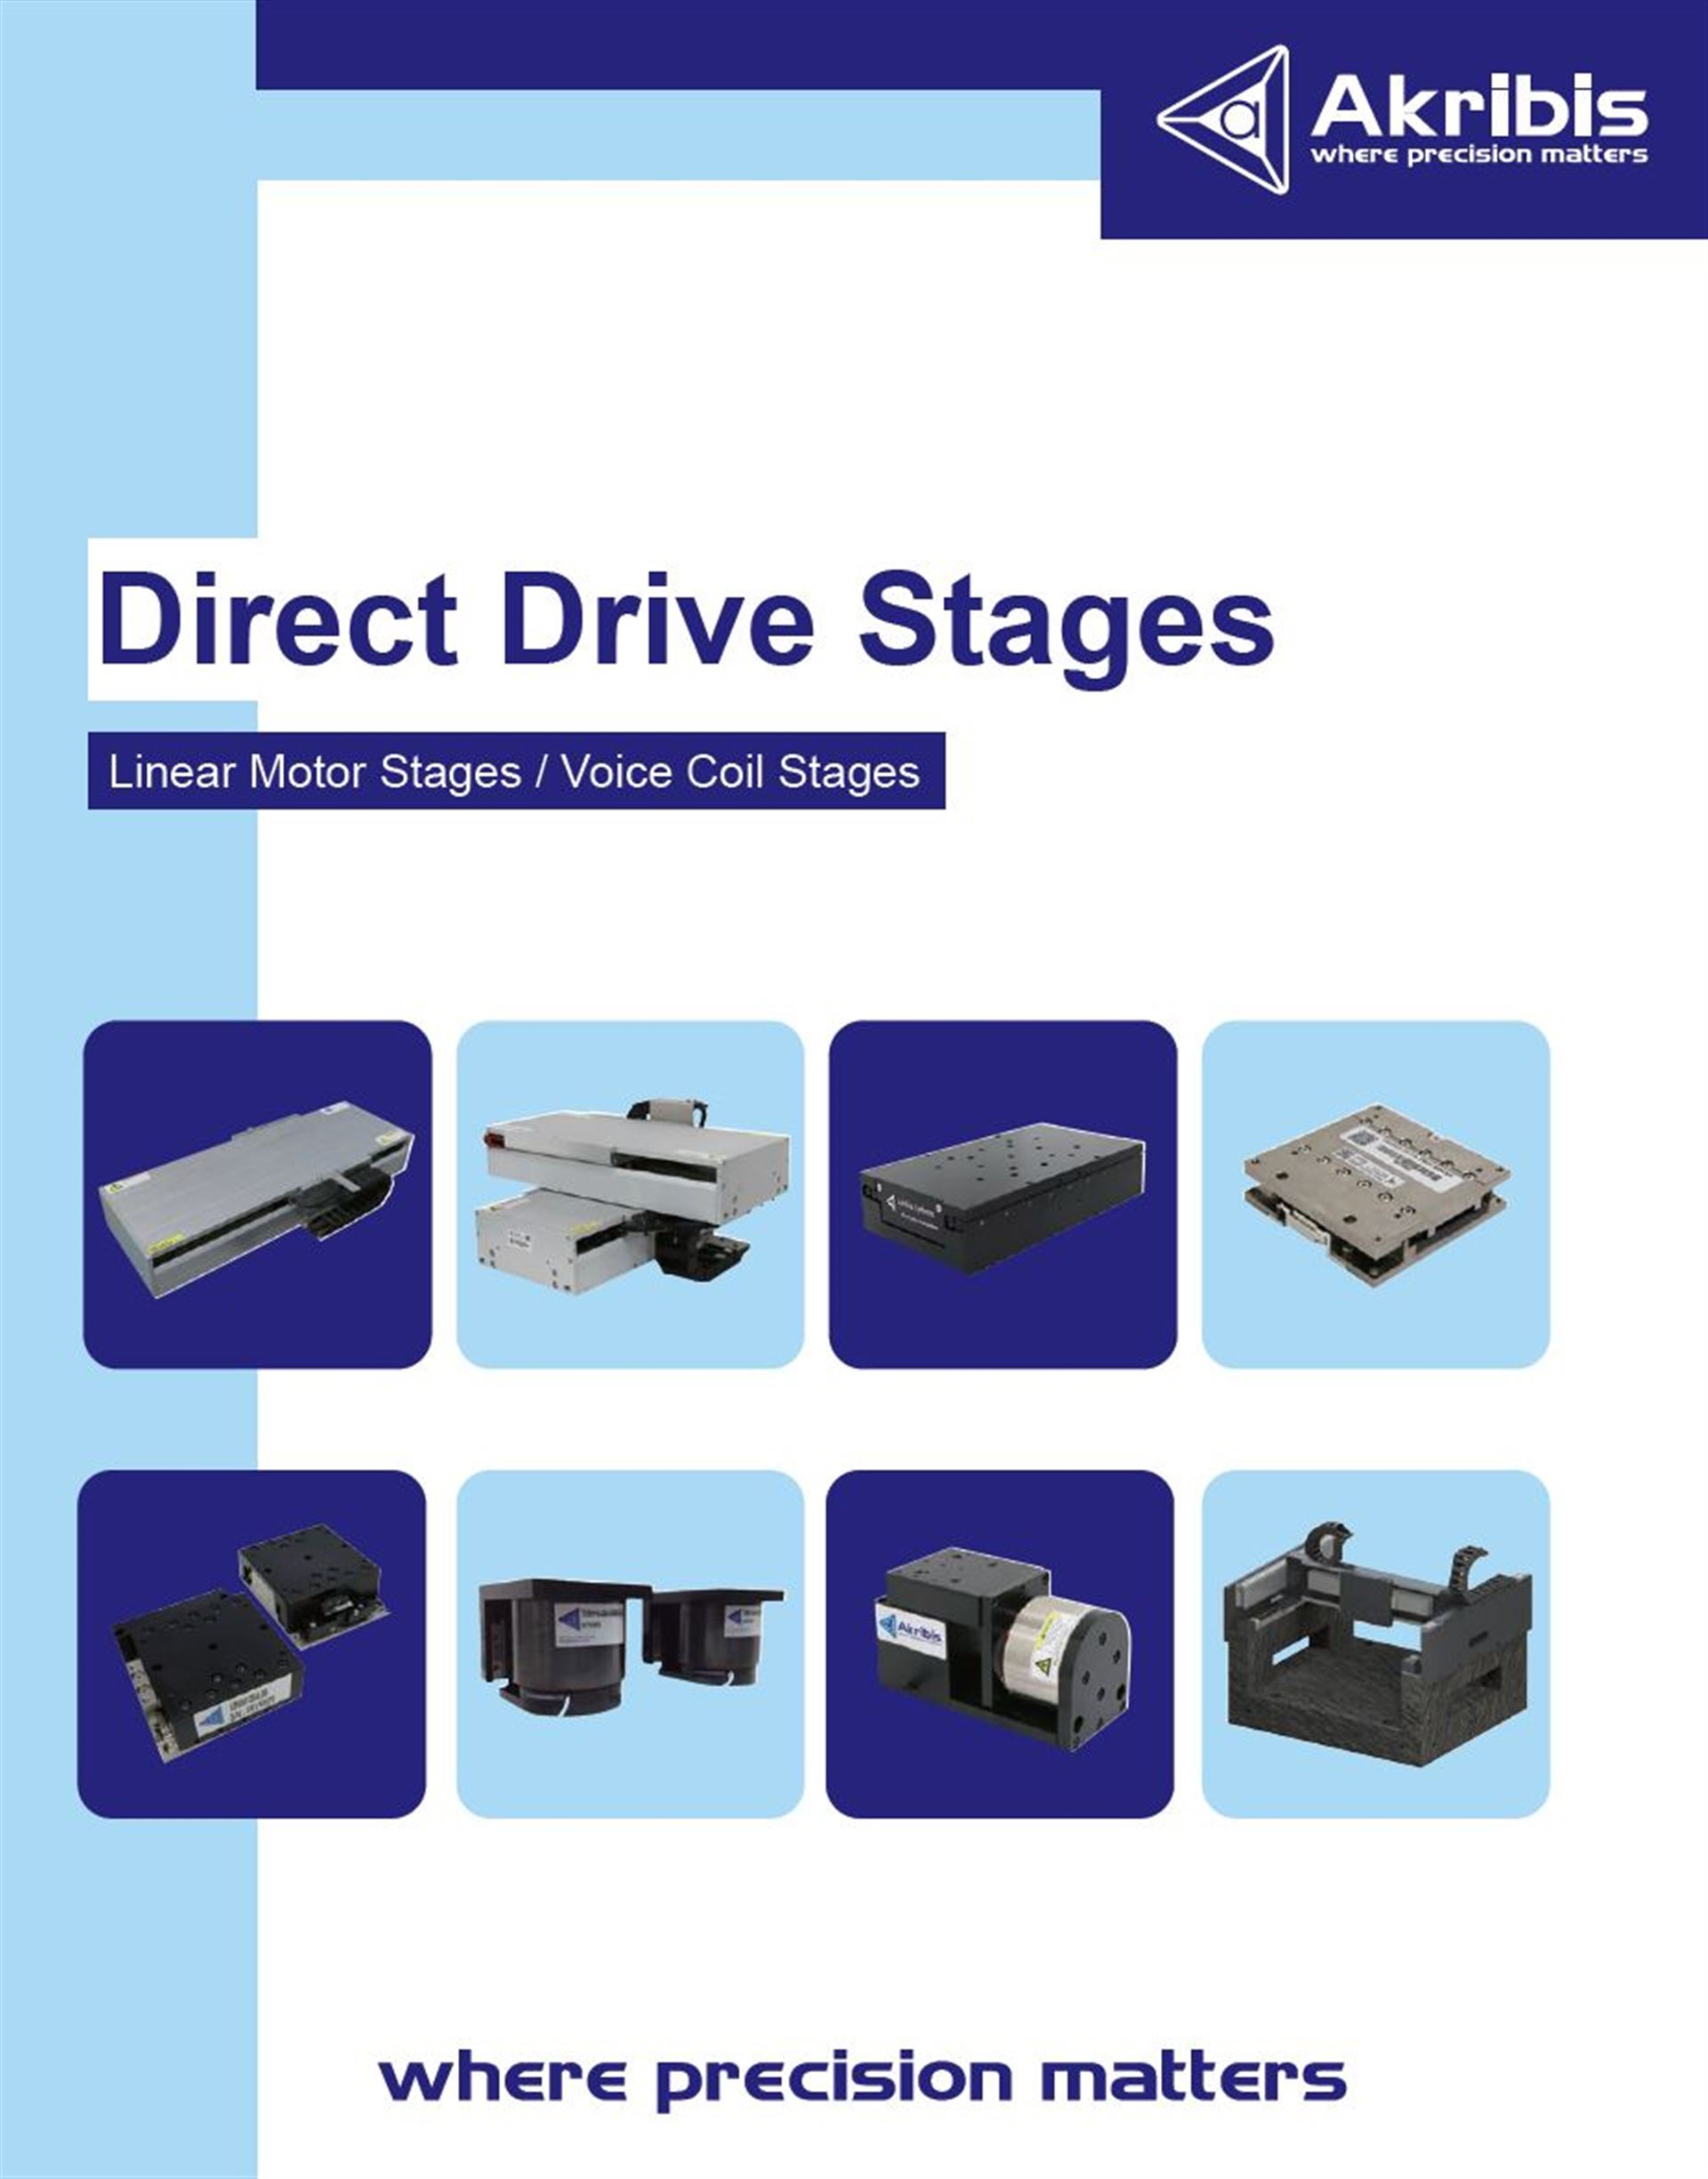 Linear Motor Stages with short lead time